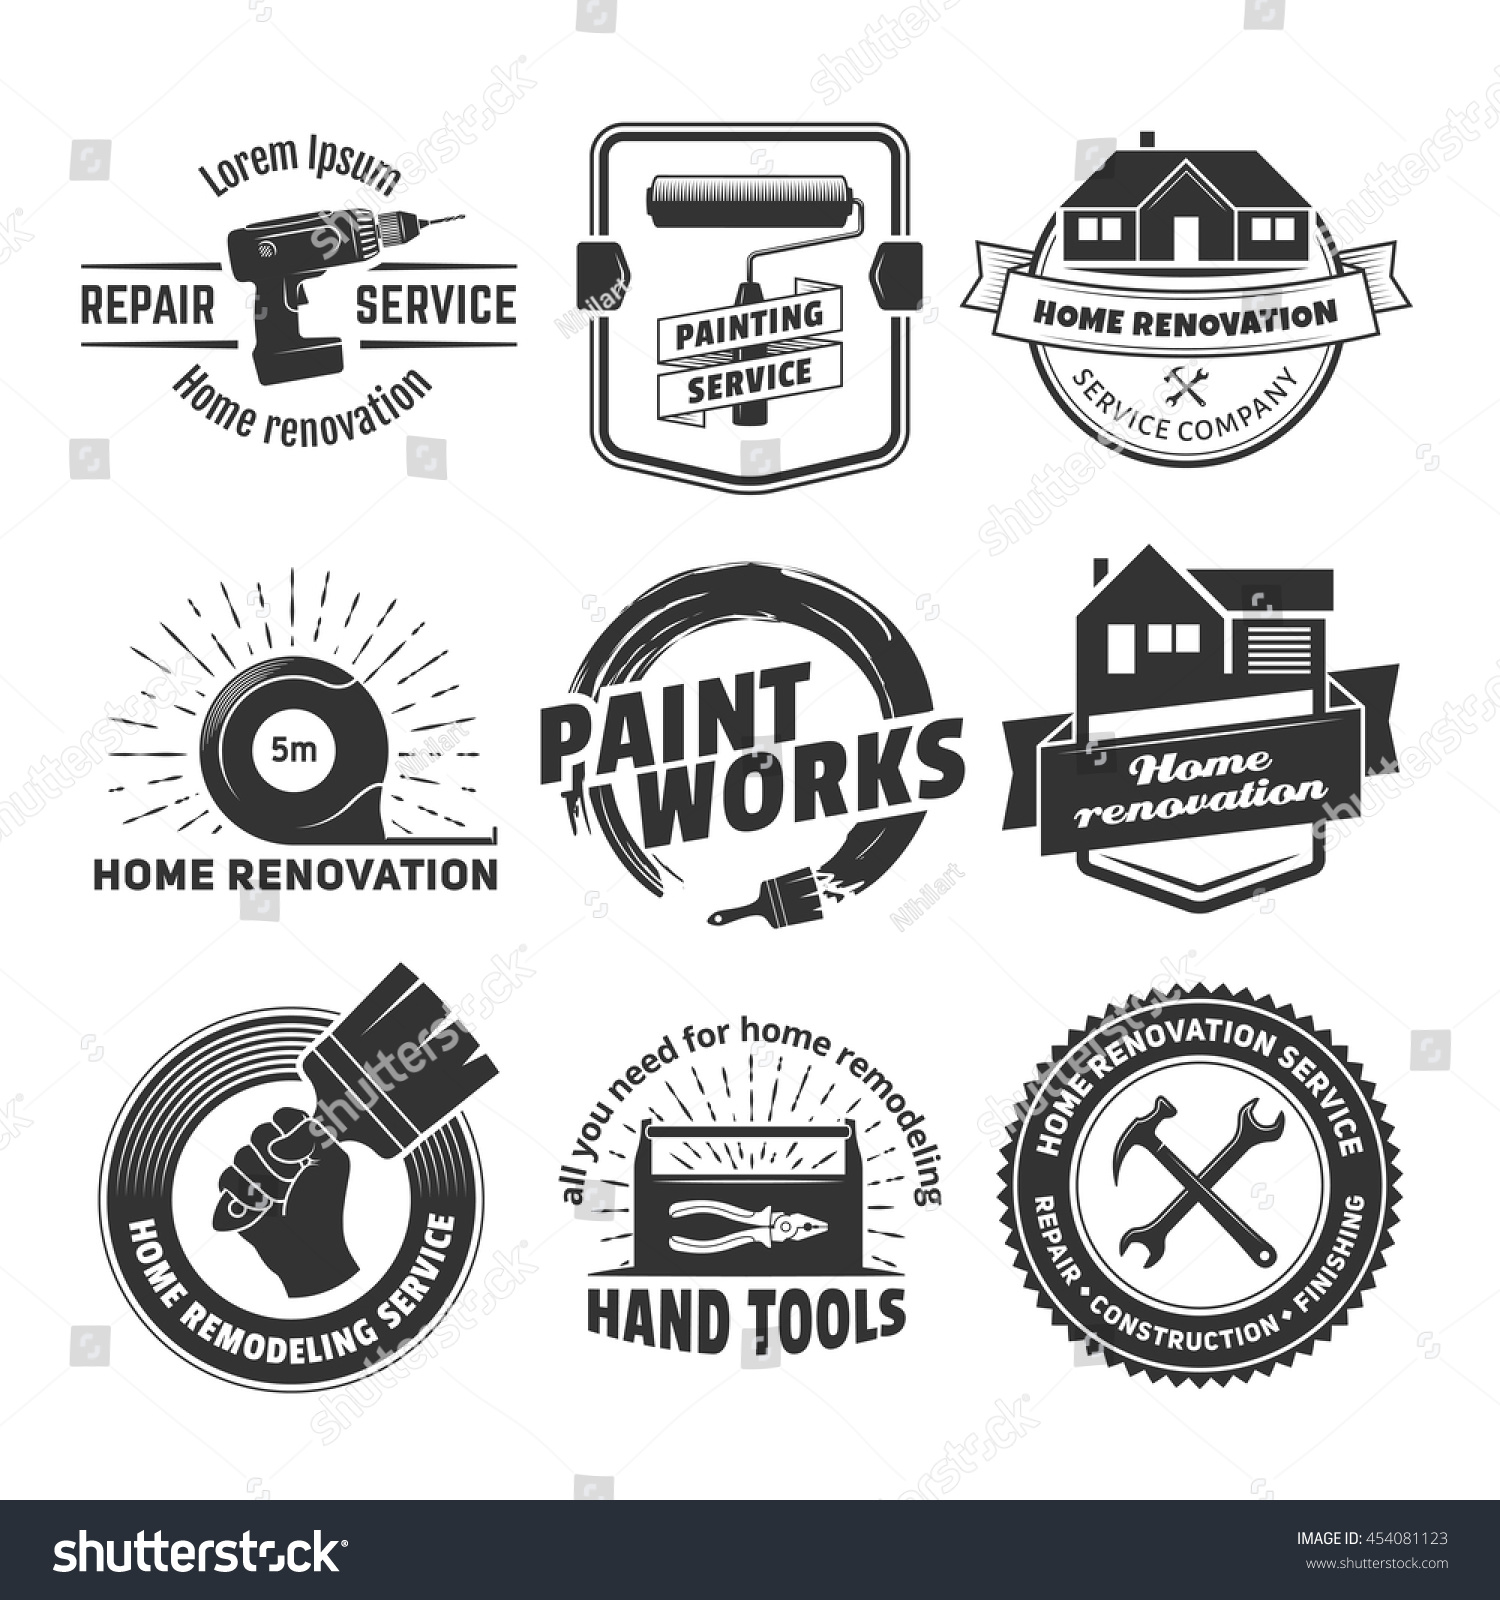 Home Remodeling Services Set Painting House Remodeling Logos Vector Badges Home Stock Vector 454081123 .